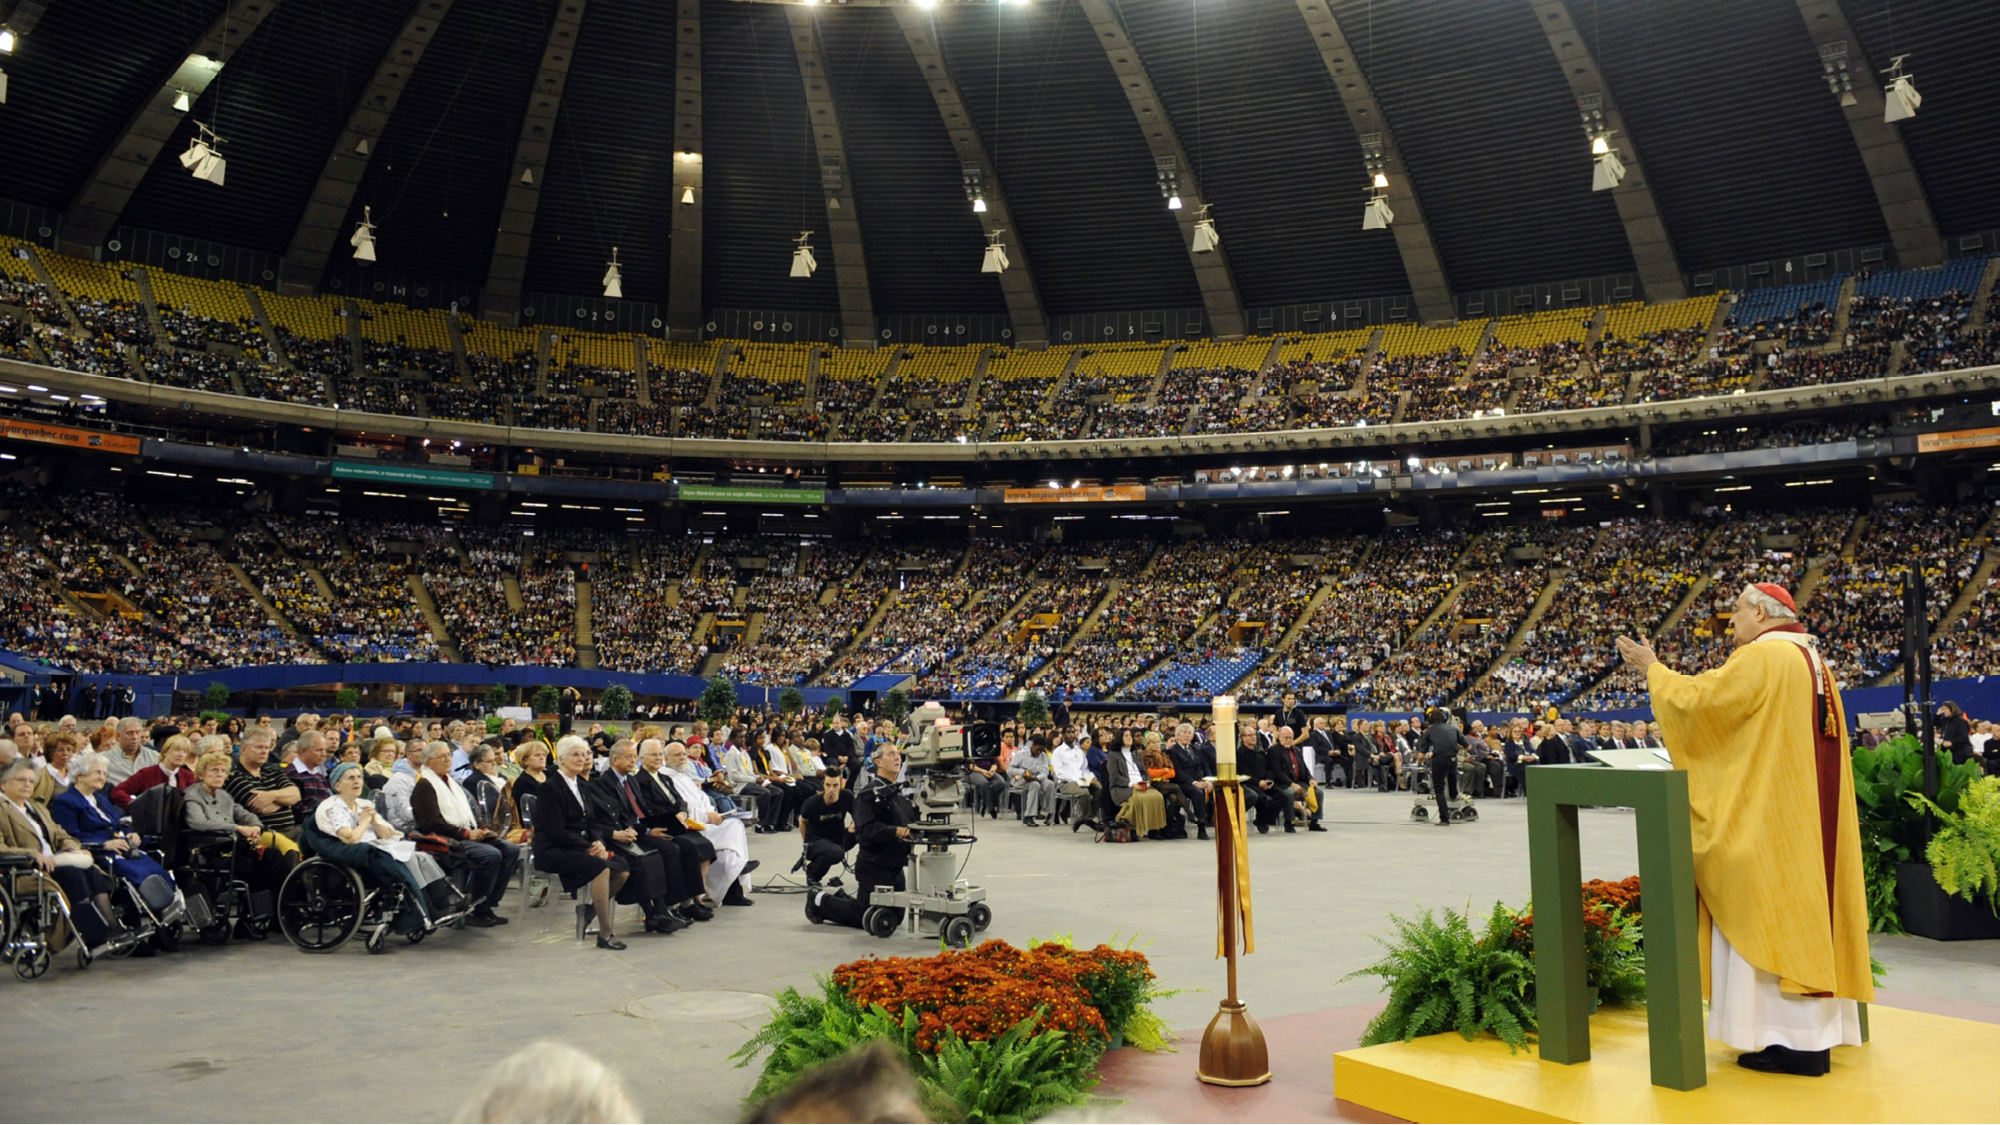 The great Thanksgiving Mass at the Olympic Stadium. How to archive a recent event?